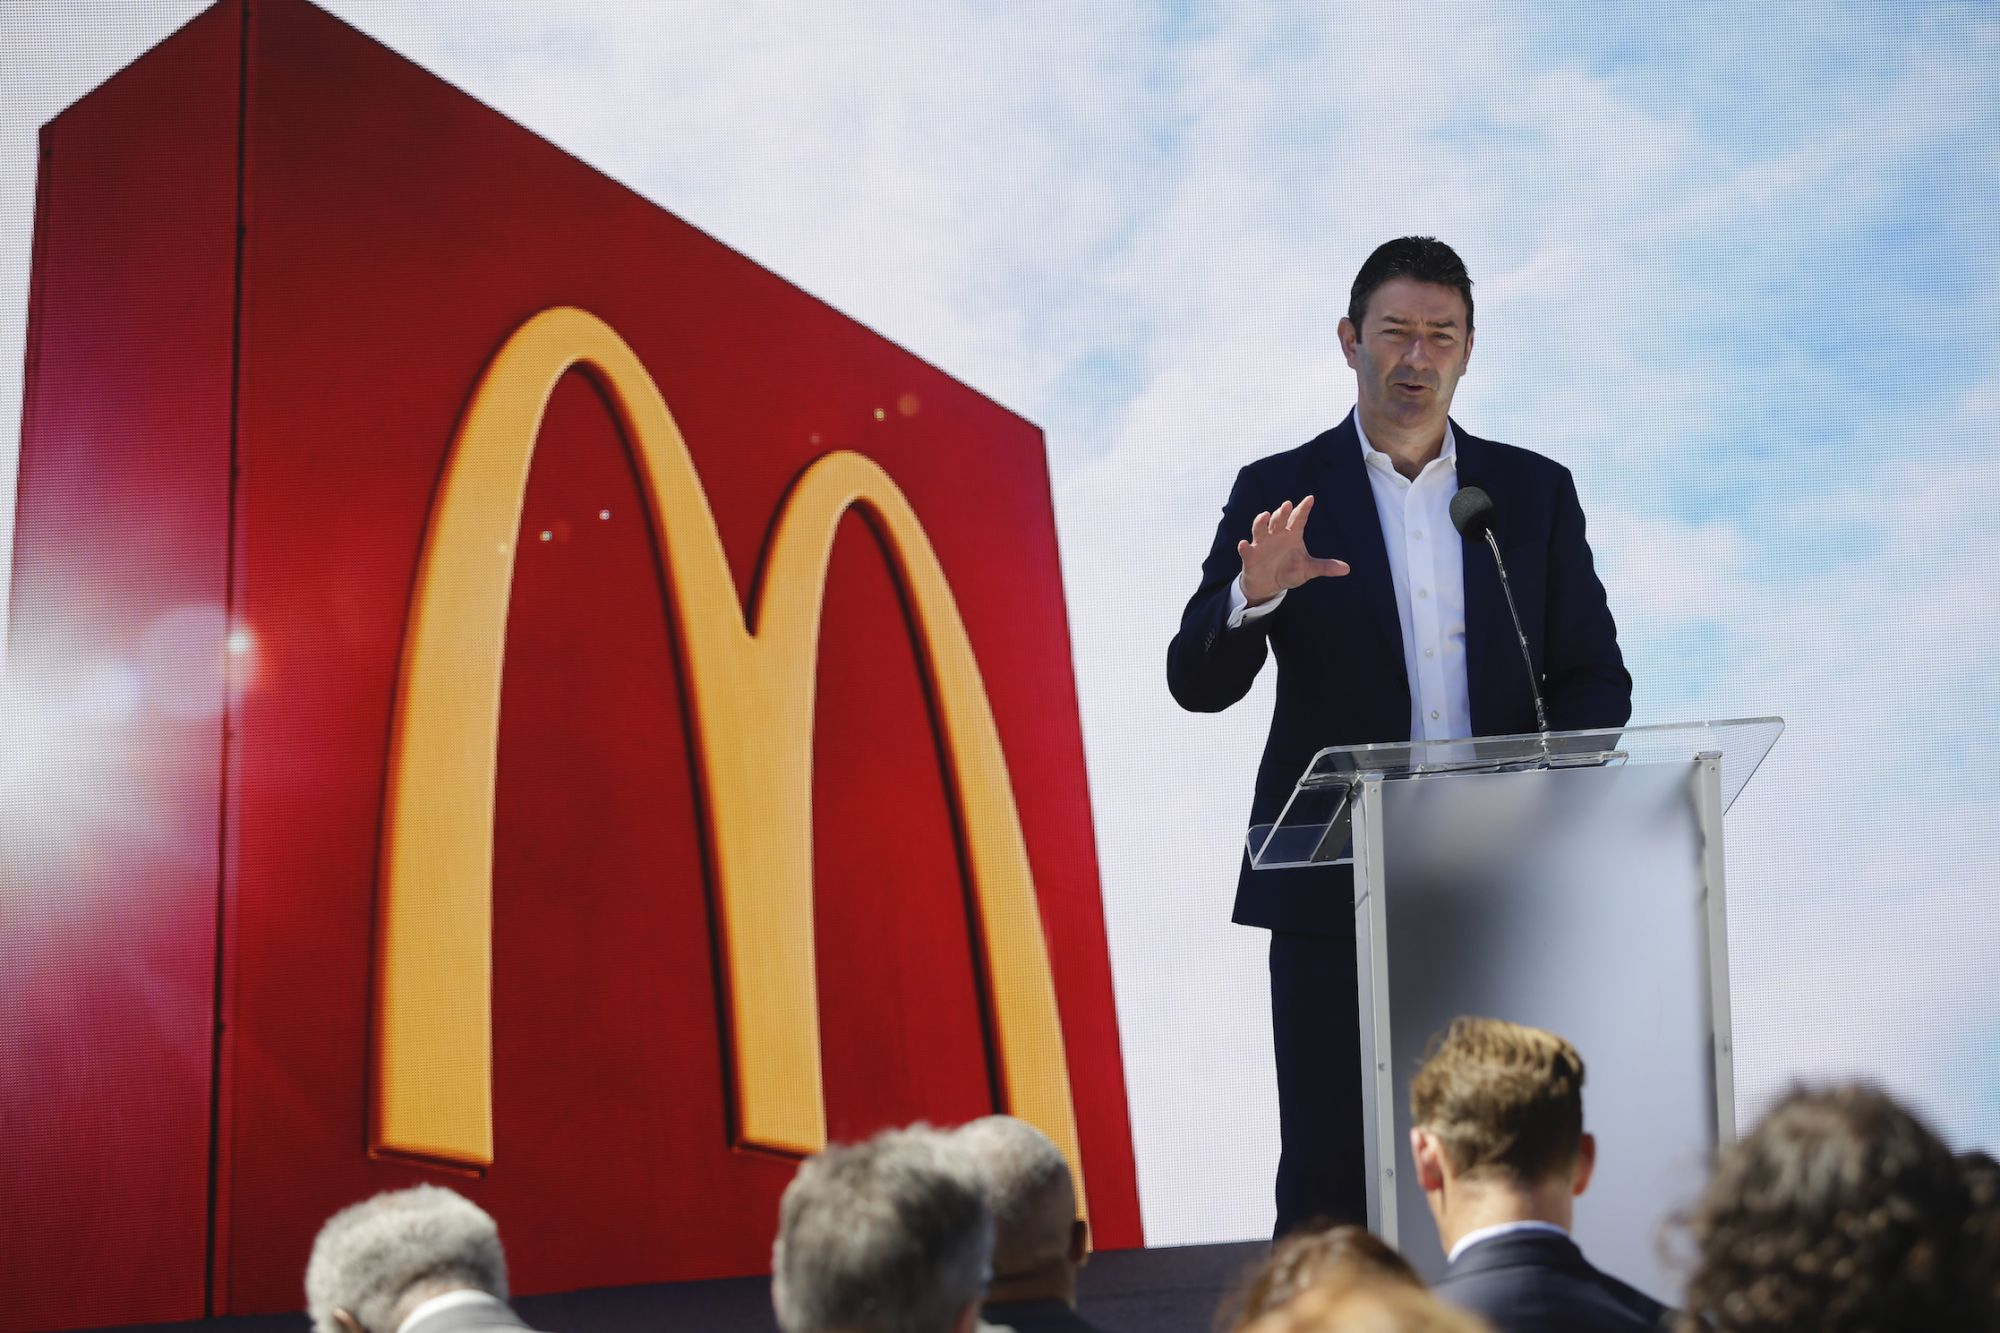 McDonald's Is Set to Lose $3.4 Billion in Value After the CEO Was Fired Over a Relationship With a Subordinate